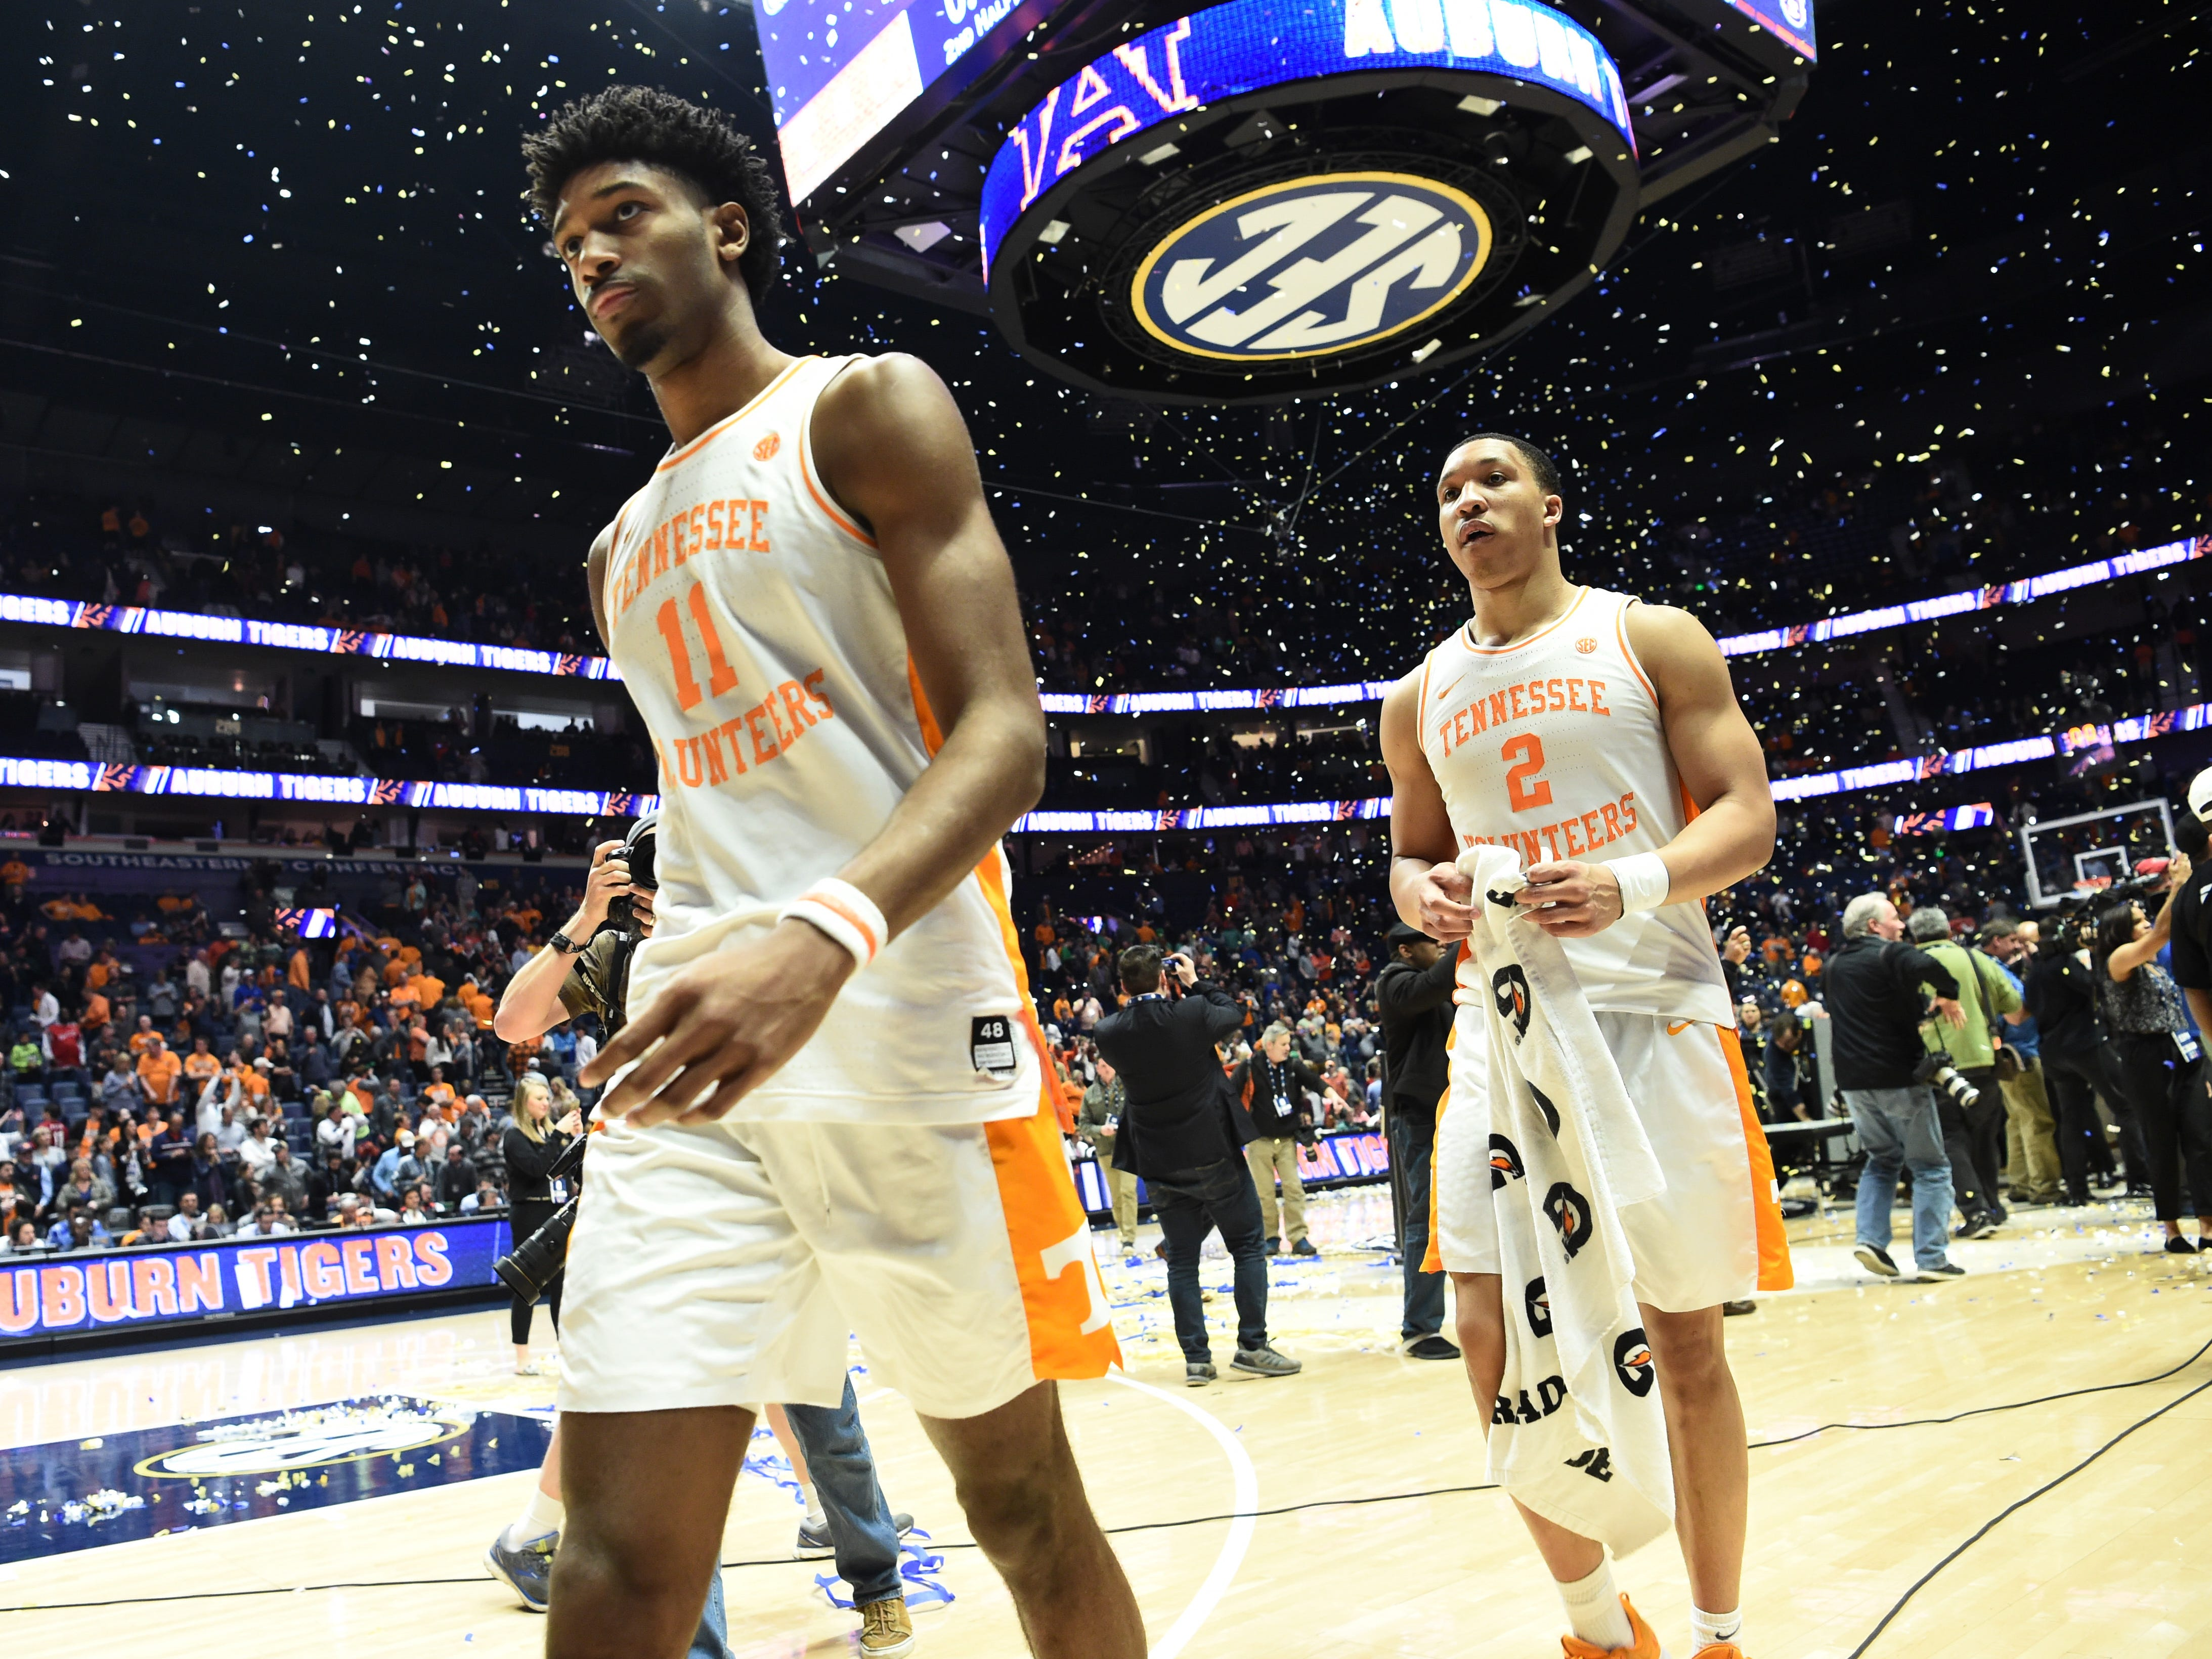 Tennessee forward Kyle Alexander (11) and Tennessee forward Grant Williams (2) walk off the court after the loss to Auburn in the SEC Men's Basketball Tournament championship game at Bridgestone Arena in Nashville, Tenn., Sunday, March 17, 2019.